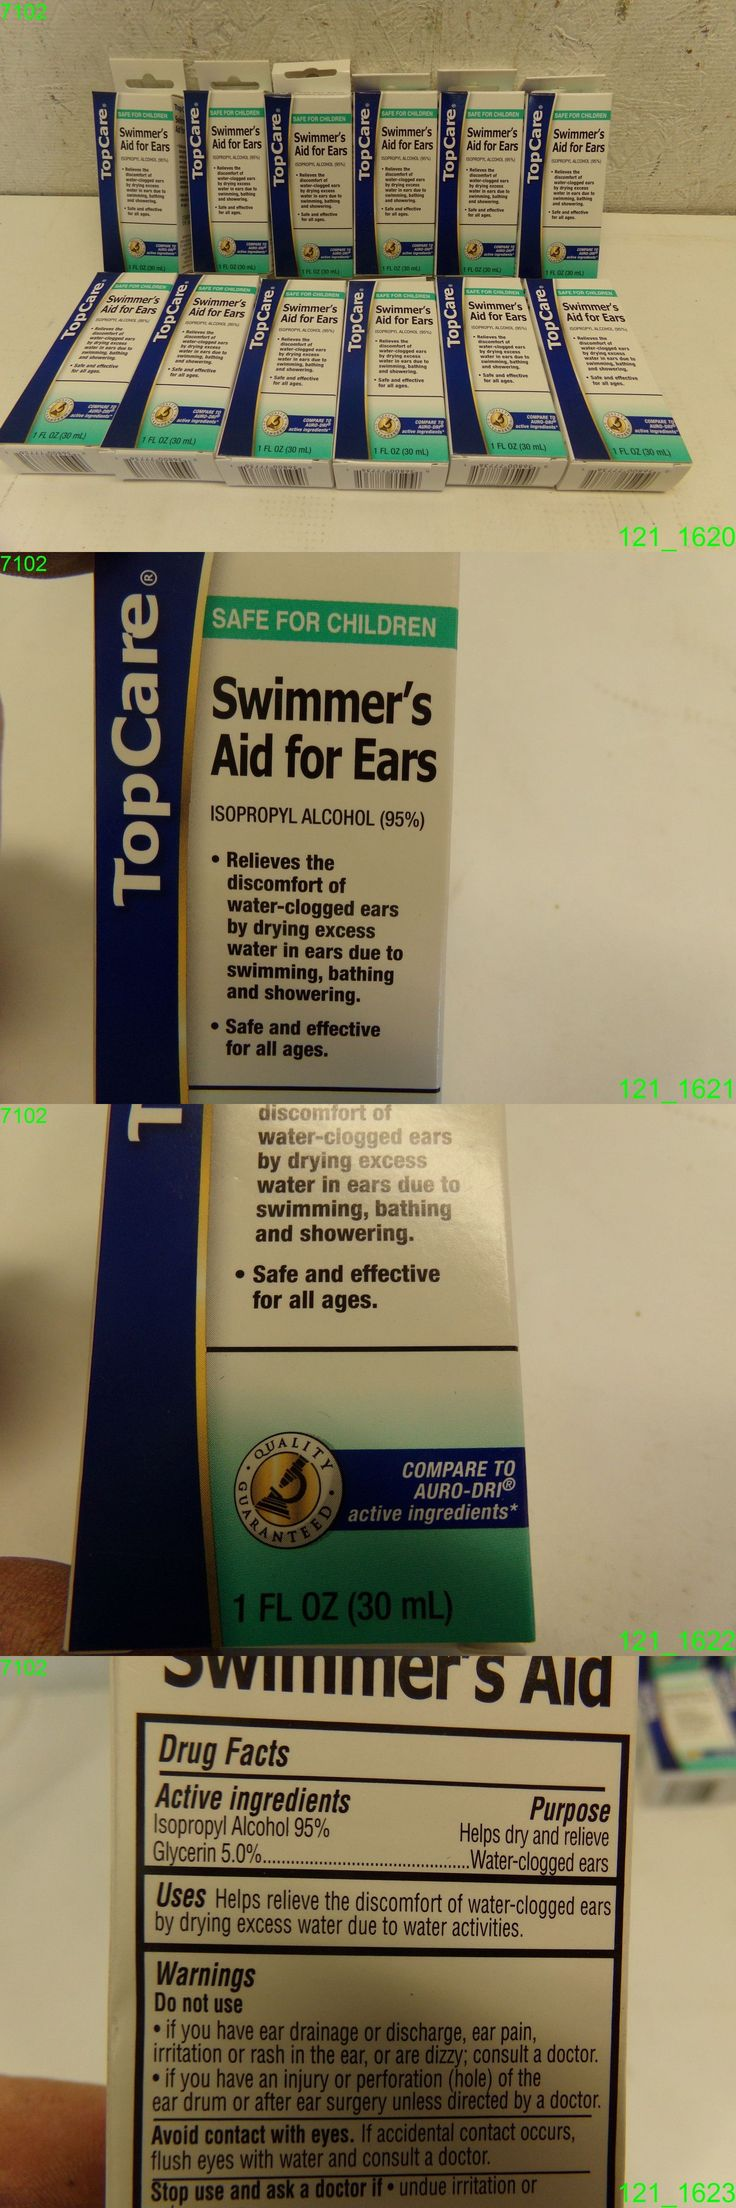 Ear Drops: 12 Pack: Topcare Swimmers Aid For Ears Water Drying Aid 1 Oz Compare To Auro-Dri -> BUY IT NOW ONLY: $33.95 on eBay!